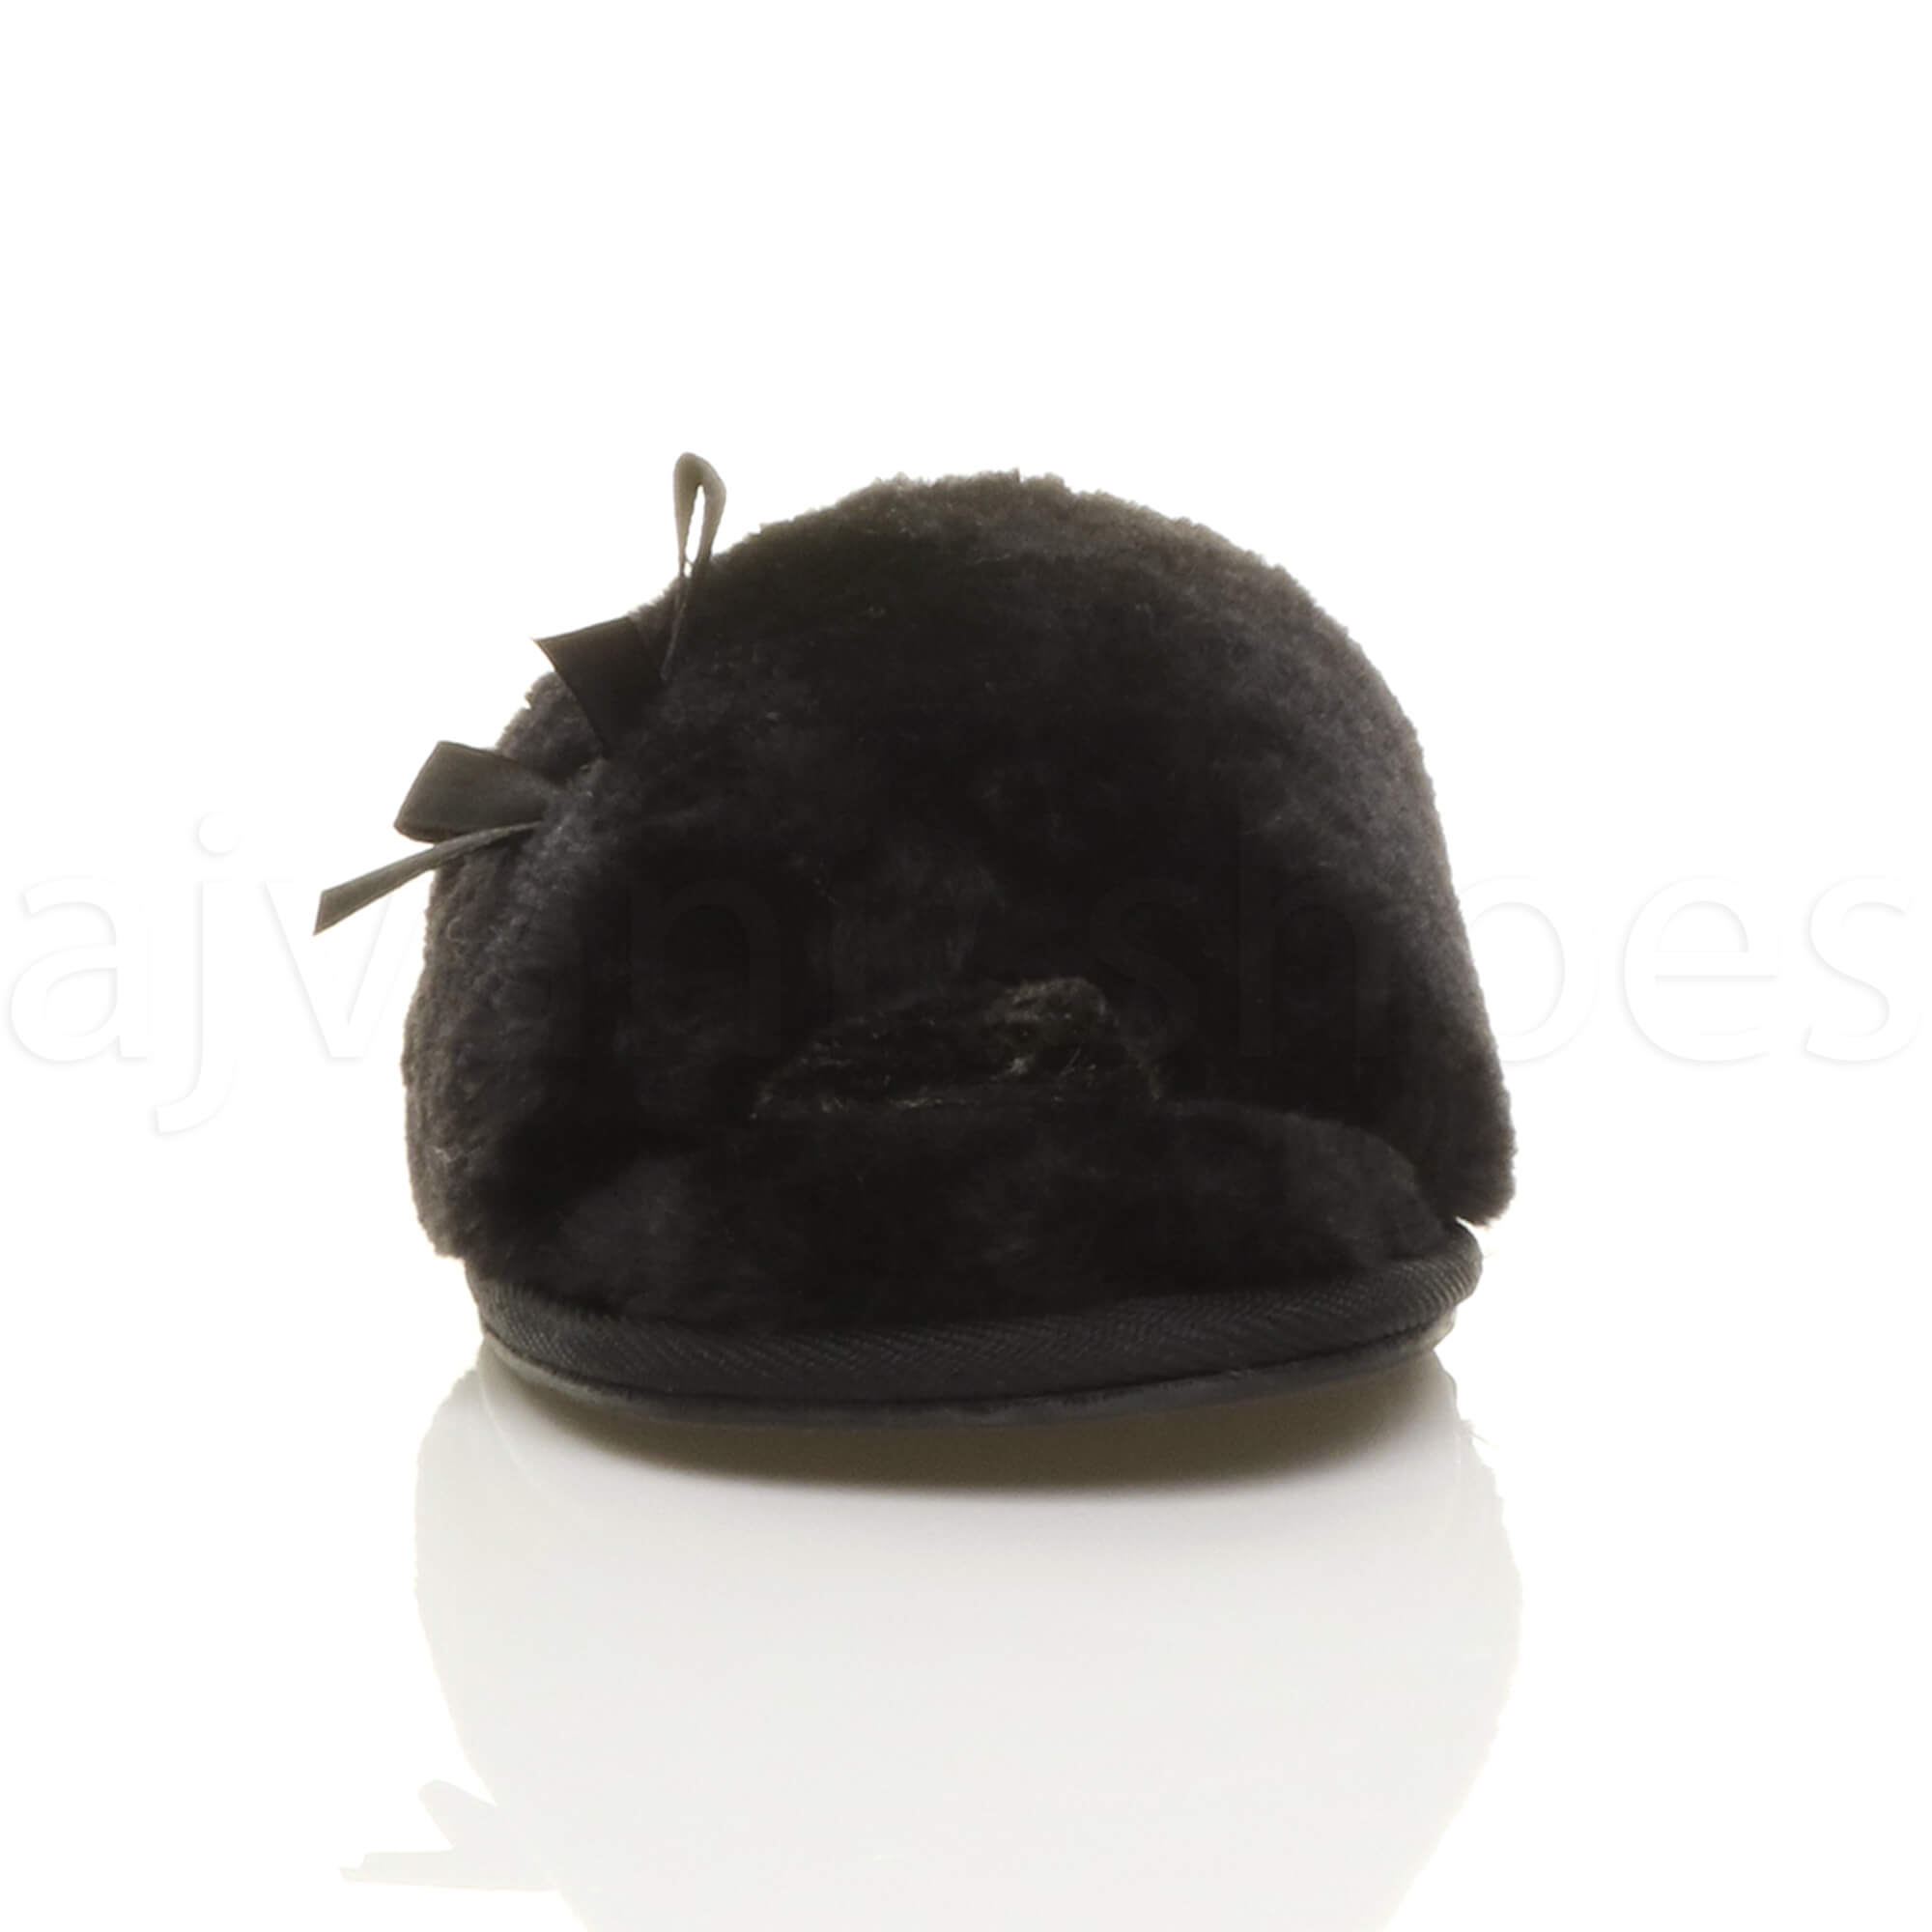 WOMENS-LADIES-FLAT-PEEP-TOE-BOW-LUXURY-COSY-FUR-LINED-SLIP-ON-SLIPPERS-SIZE thumbnail 15